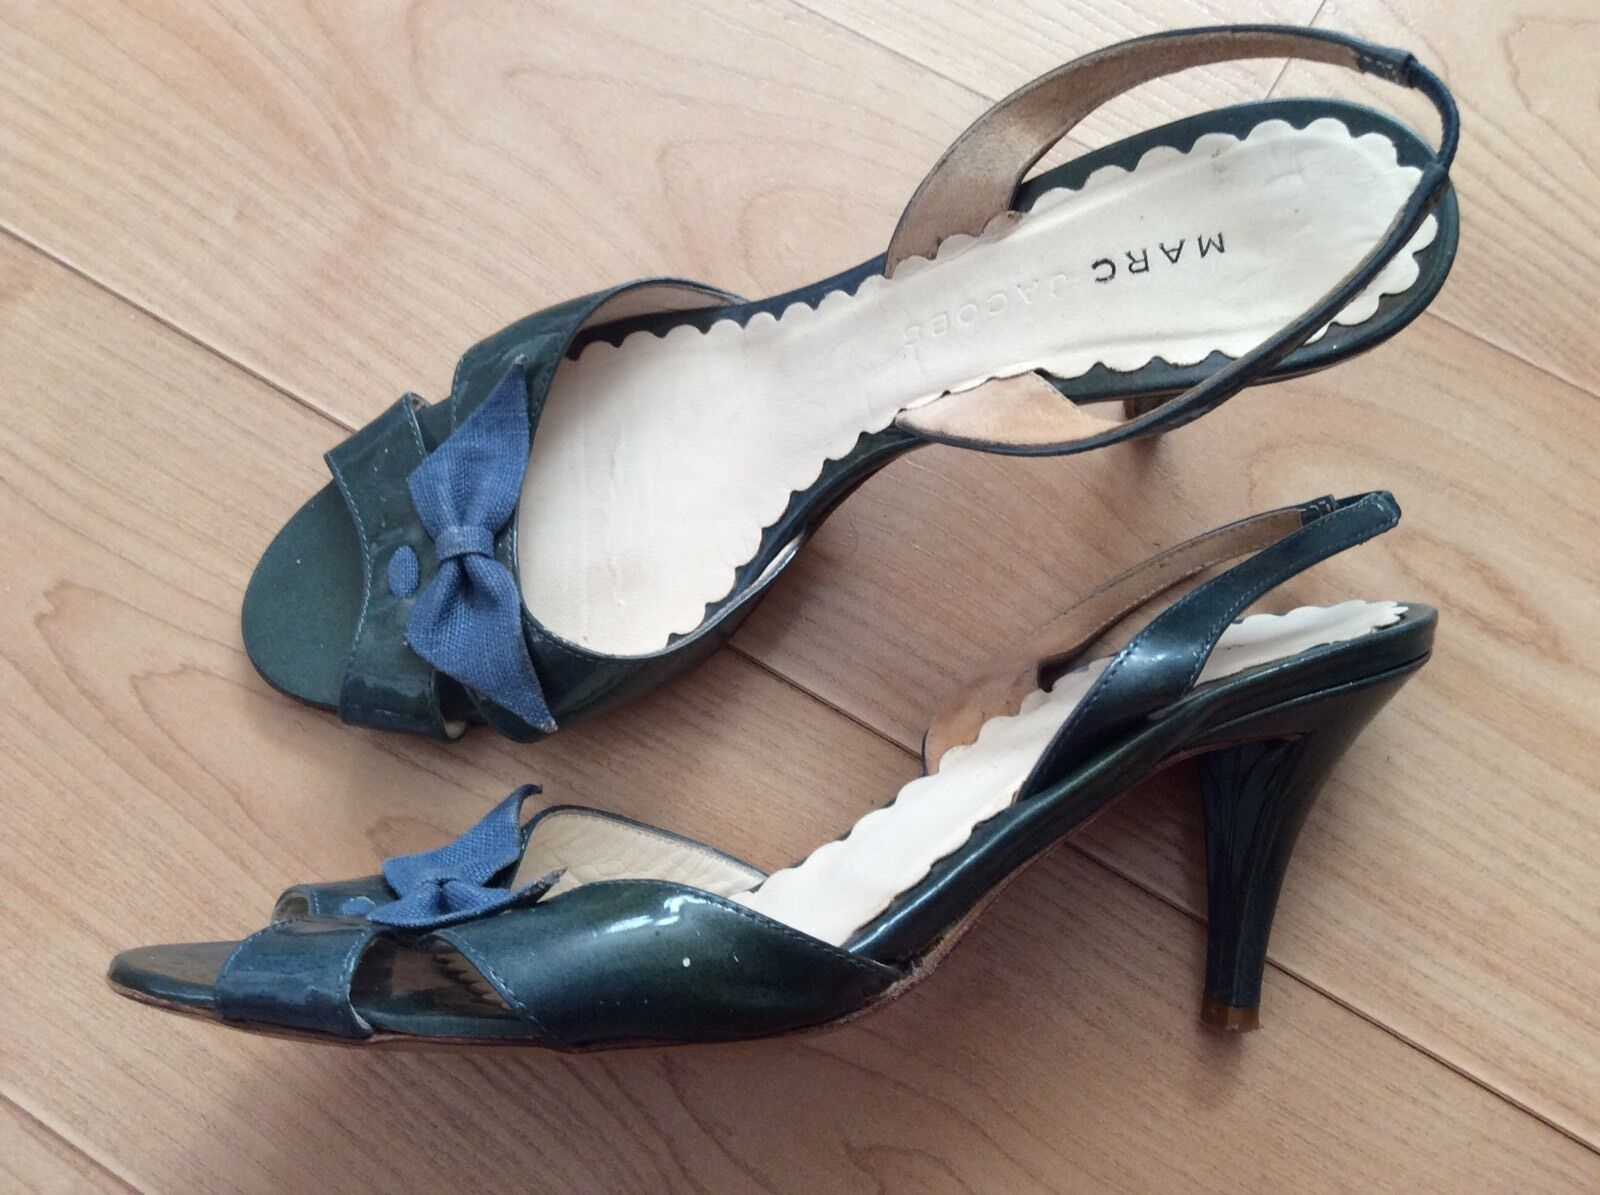 MARC JACOBS Patent Leather Green Bowtie Sandals Slingback Sz 7.5 Italy Worn